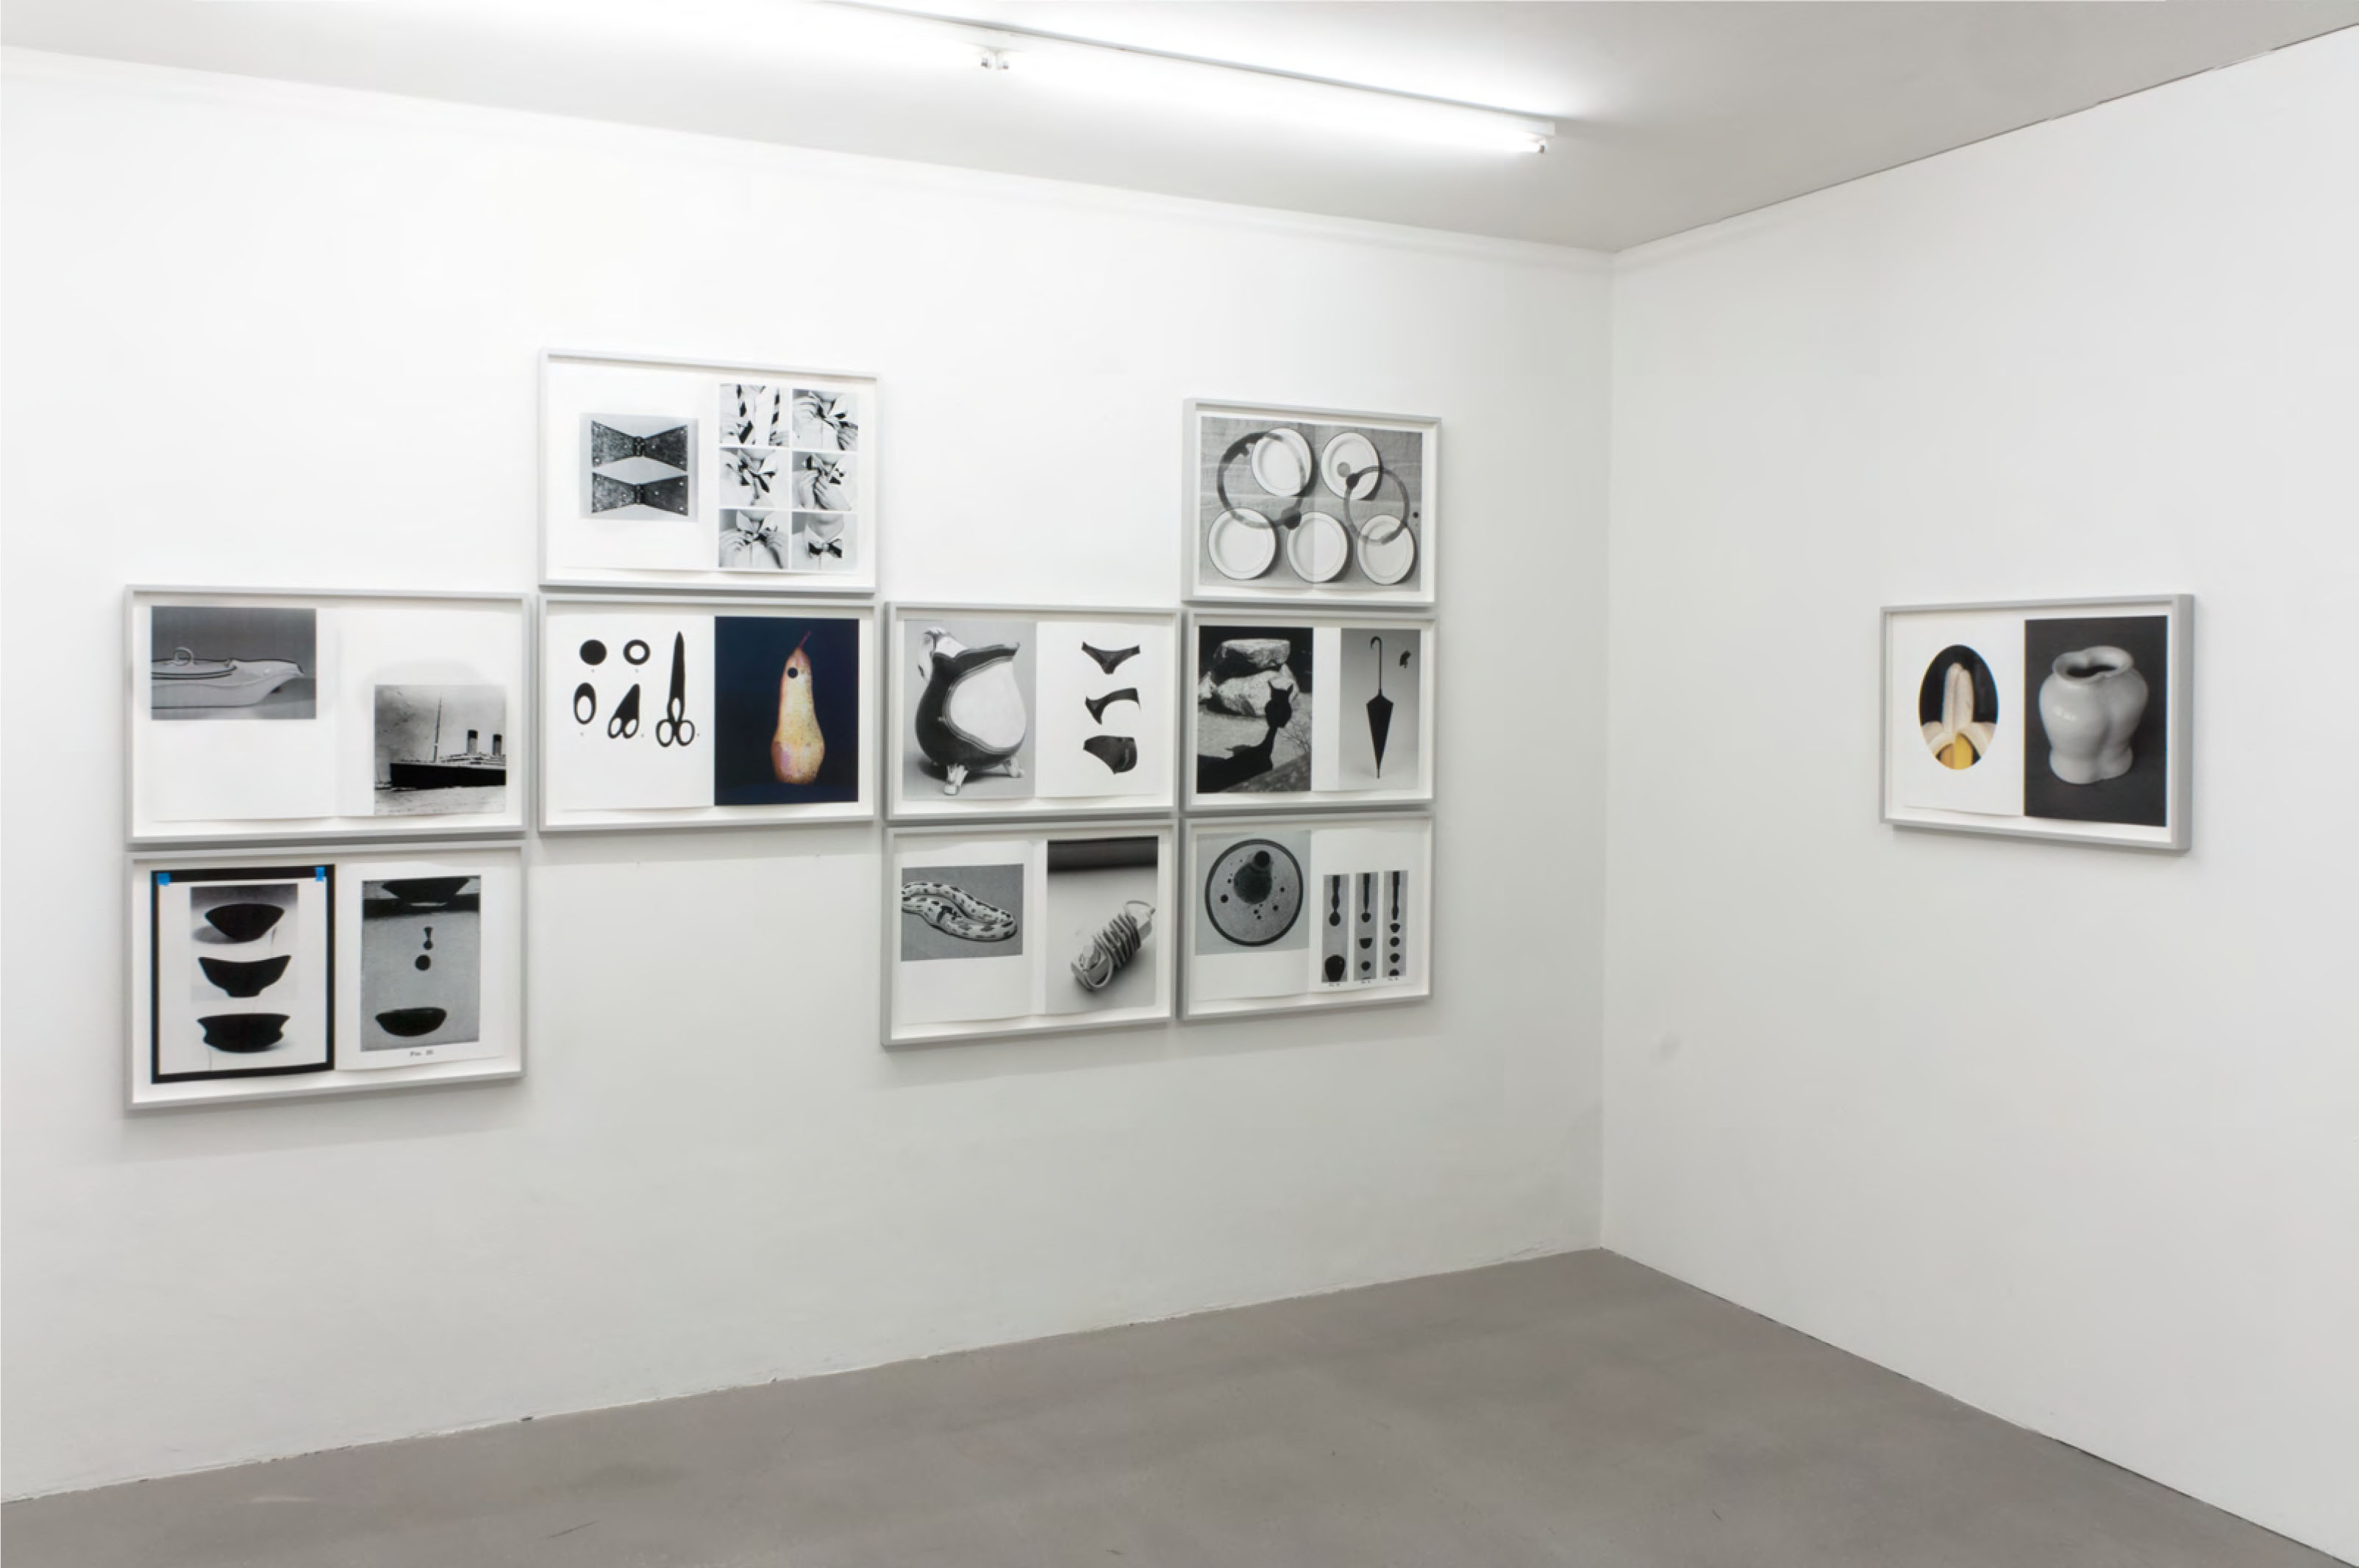 installation view Kathrin Sonntag, Kadel Willborn, Düsseldorf, Germany, 2016.